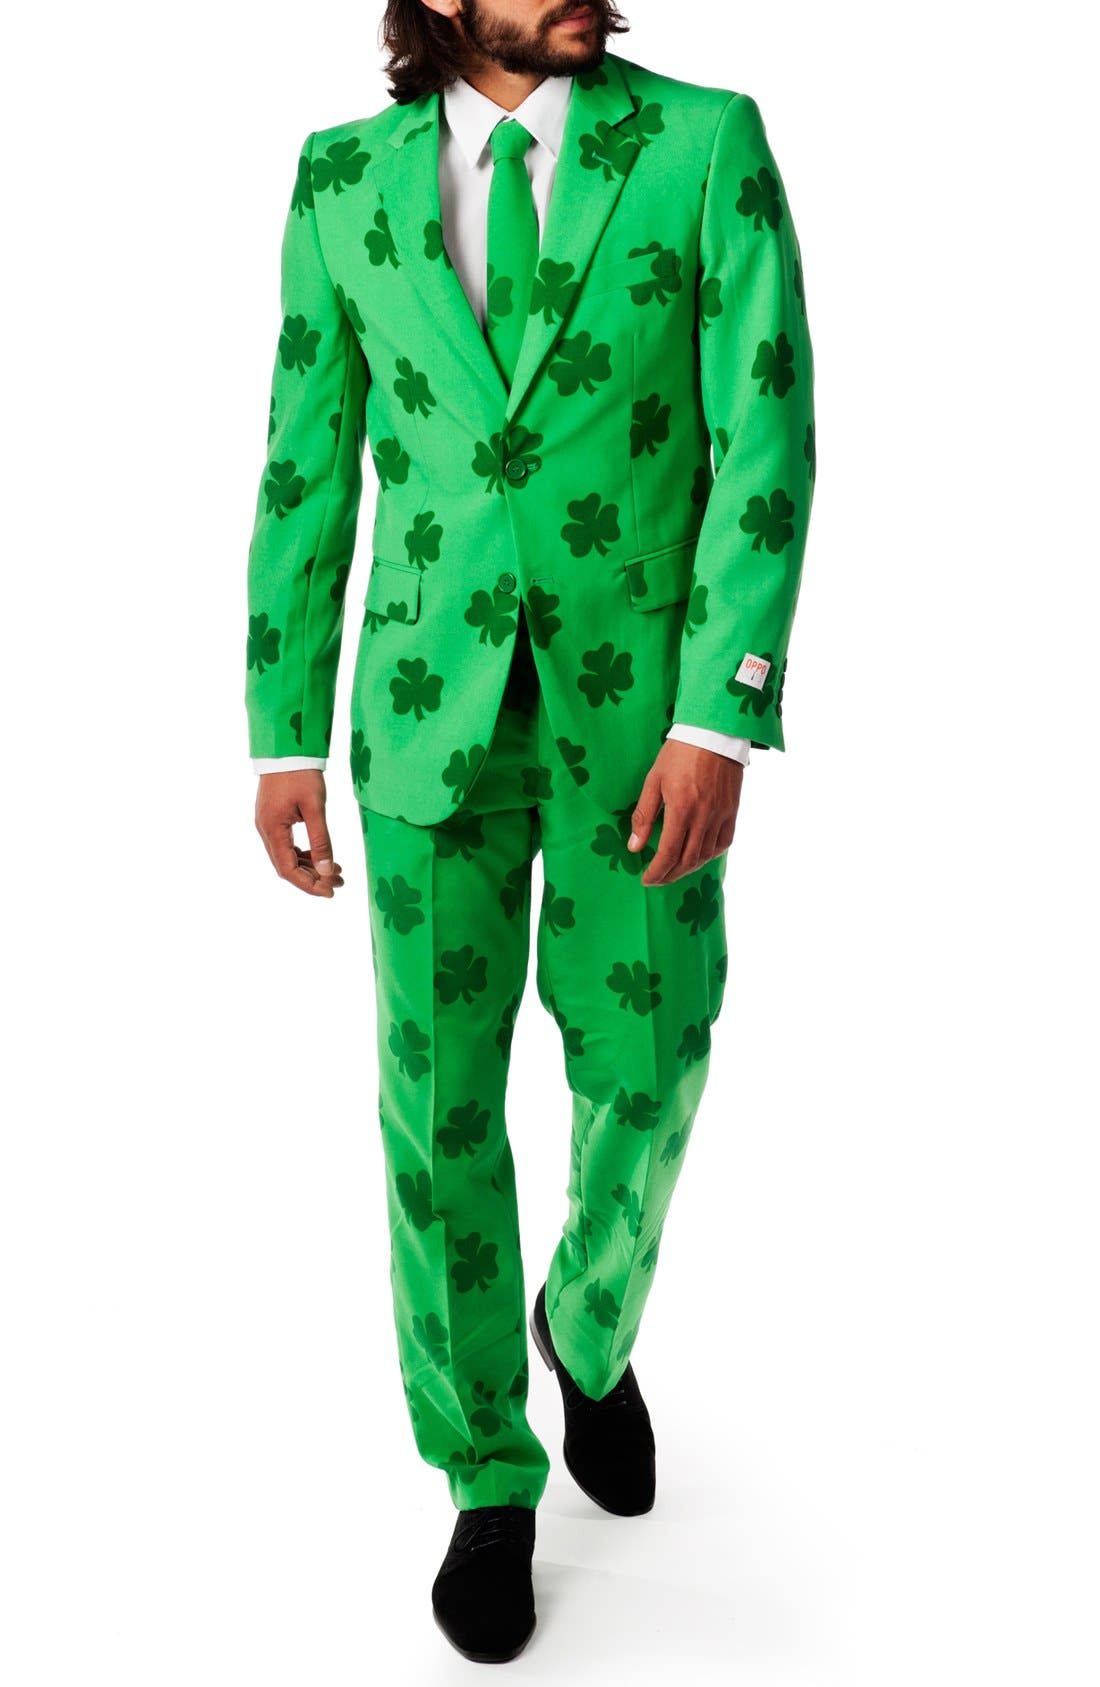 'Patrick' Trim Fit Two-Piece Suit with Tie,                             Alternate thumbnail 3, color,                             Green